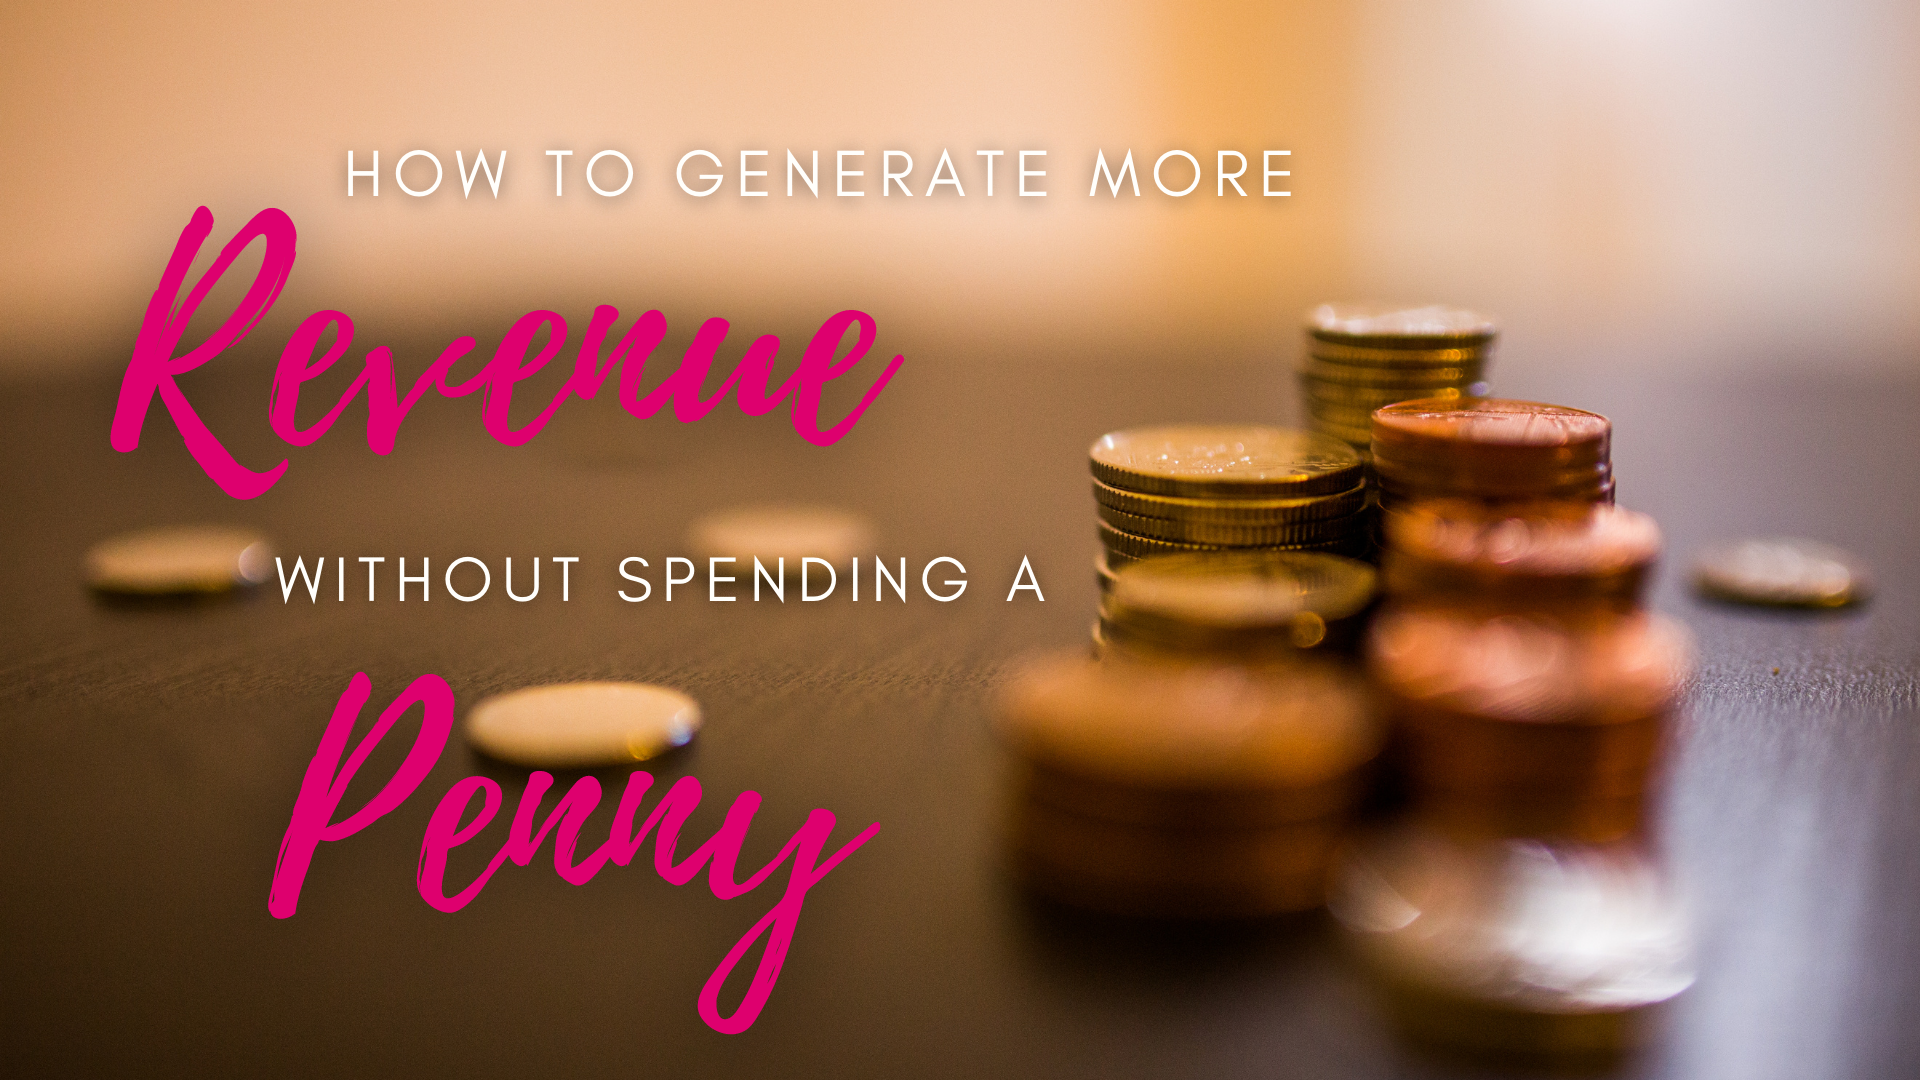 How do I make more money without spending a penny!